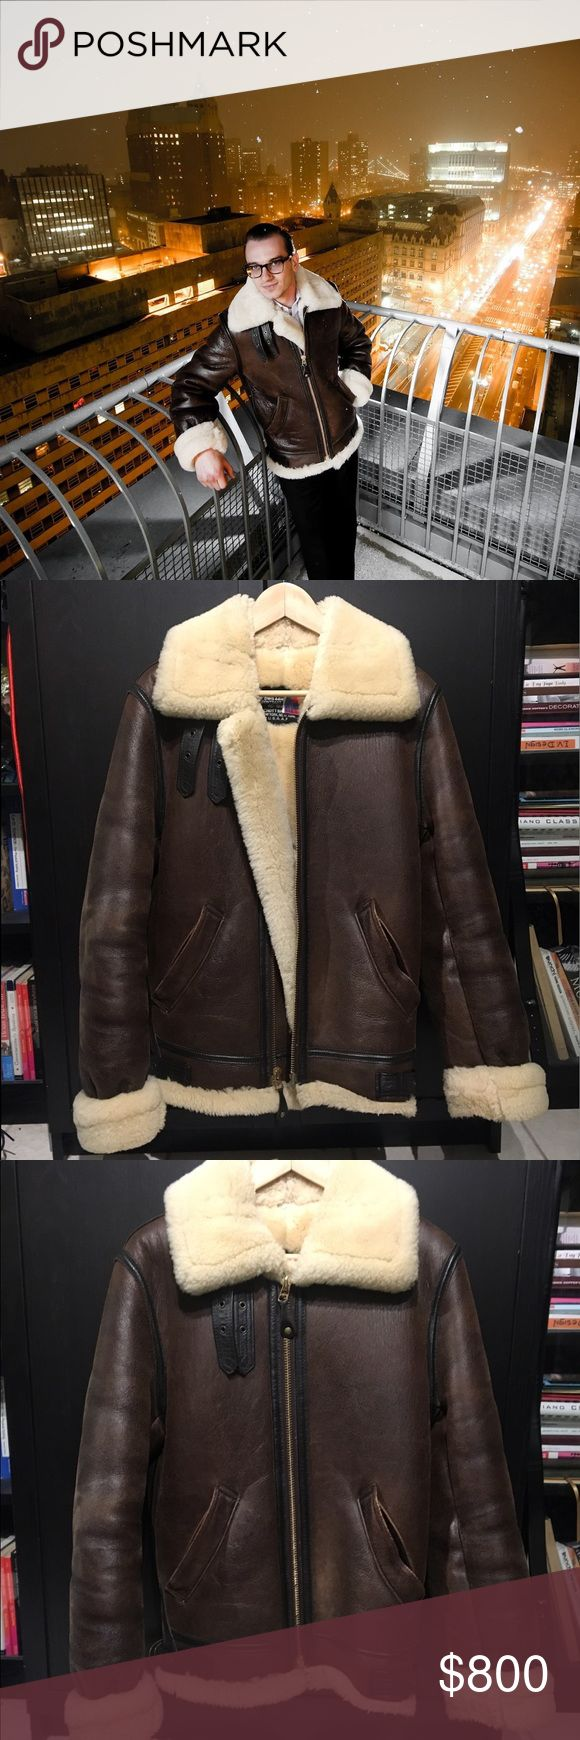 Schott shearling leather bomber jacket Schott leather World War II inspired bomber jacket. SUPER WARM AND COZY. Fits xtra small and small sized with room to wear a sweater. Great quality and lightly worn...leather was conditioned after each wear.  💫WILLING TO NEGOTIATE, SEND ME AN OFFER!💫 Any questions, just ask below! 😀 Schott Jackets & Coats Military & Field